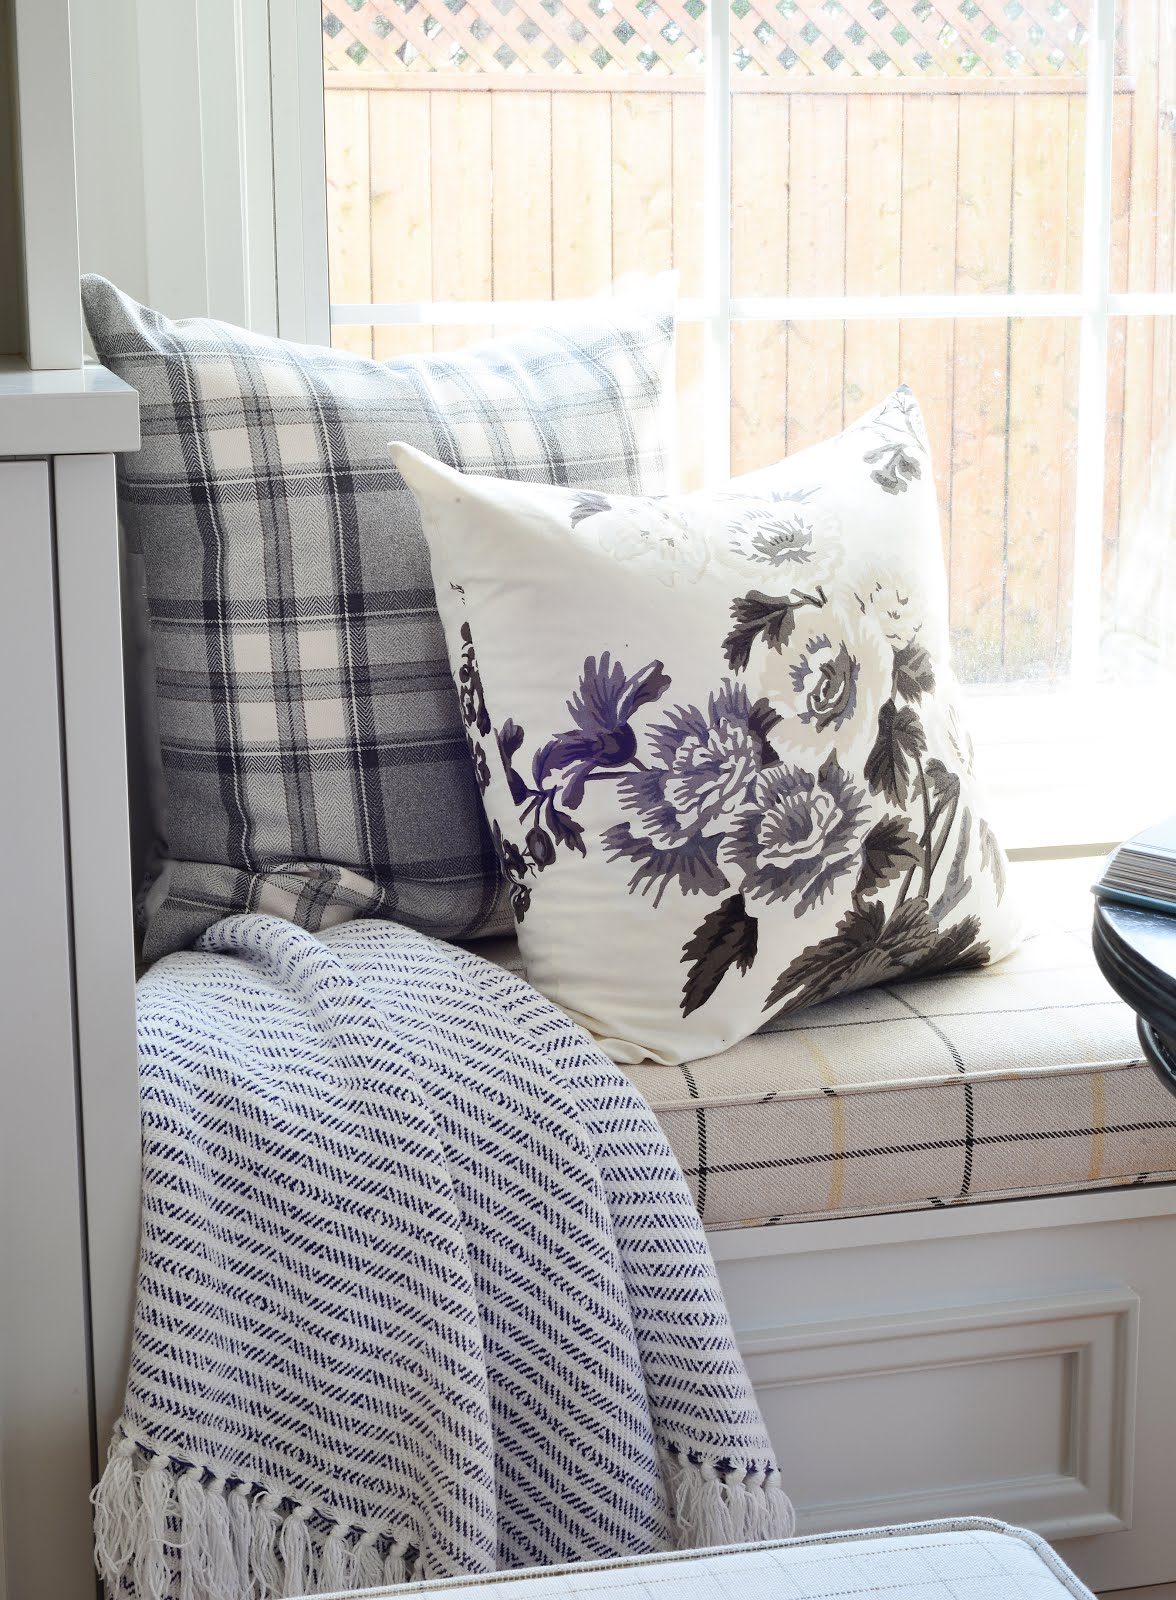 cozy window bench seat, floral pillow cover, striped throw, plaid cushion covers